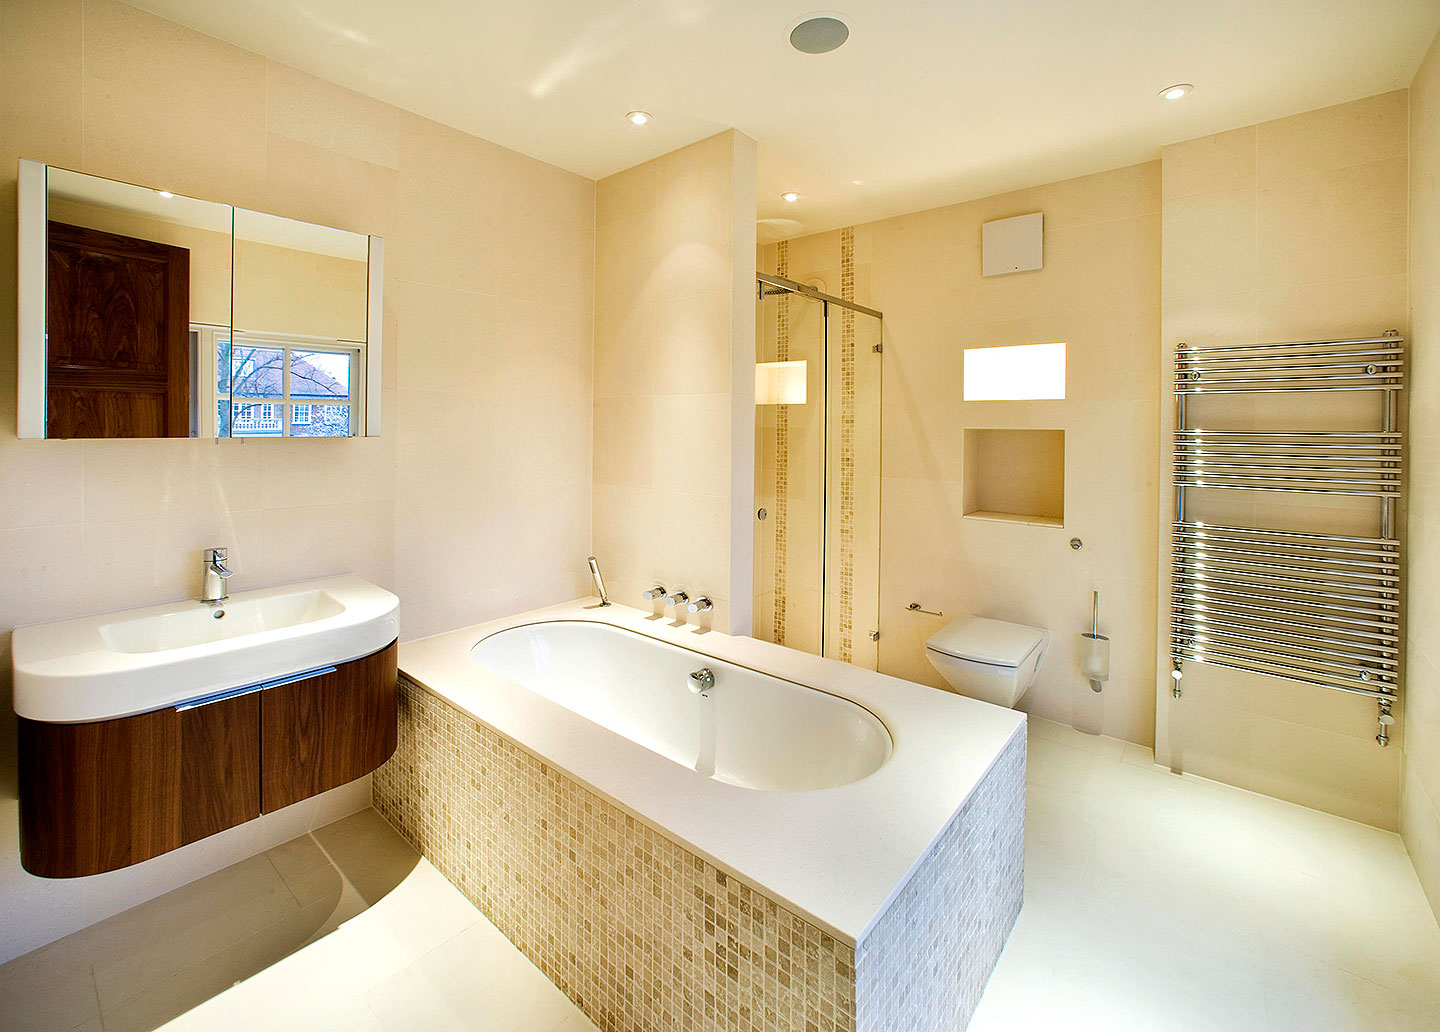 Luxury Resident London - Bathroom